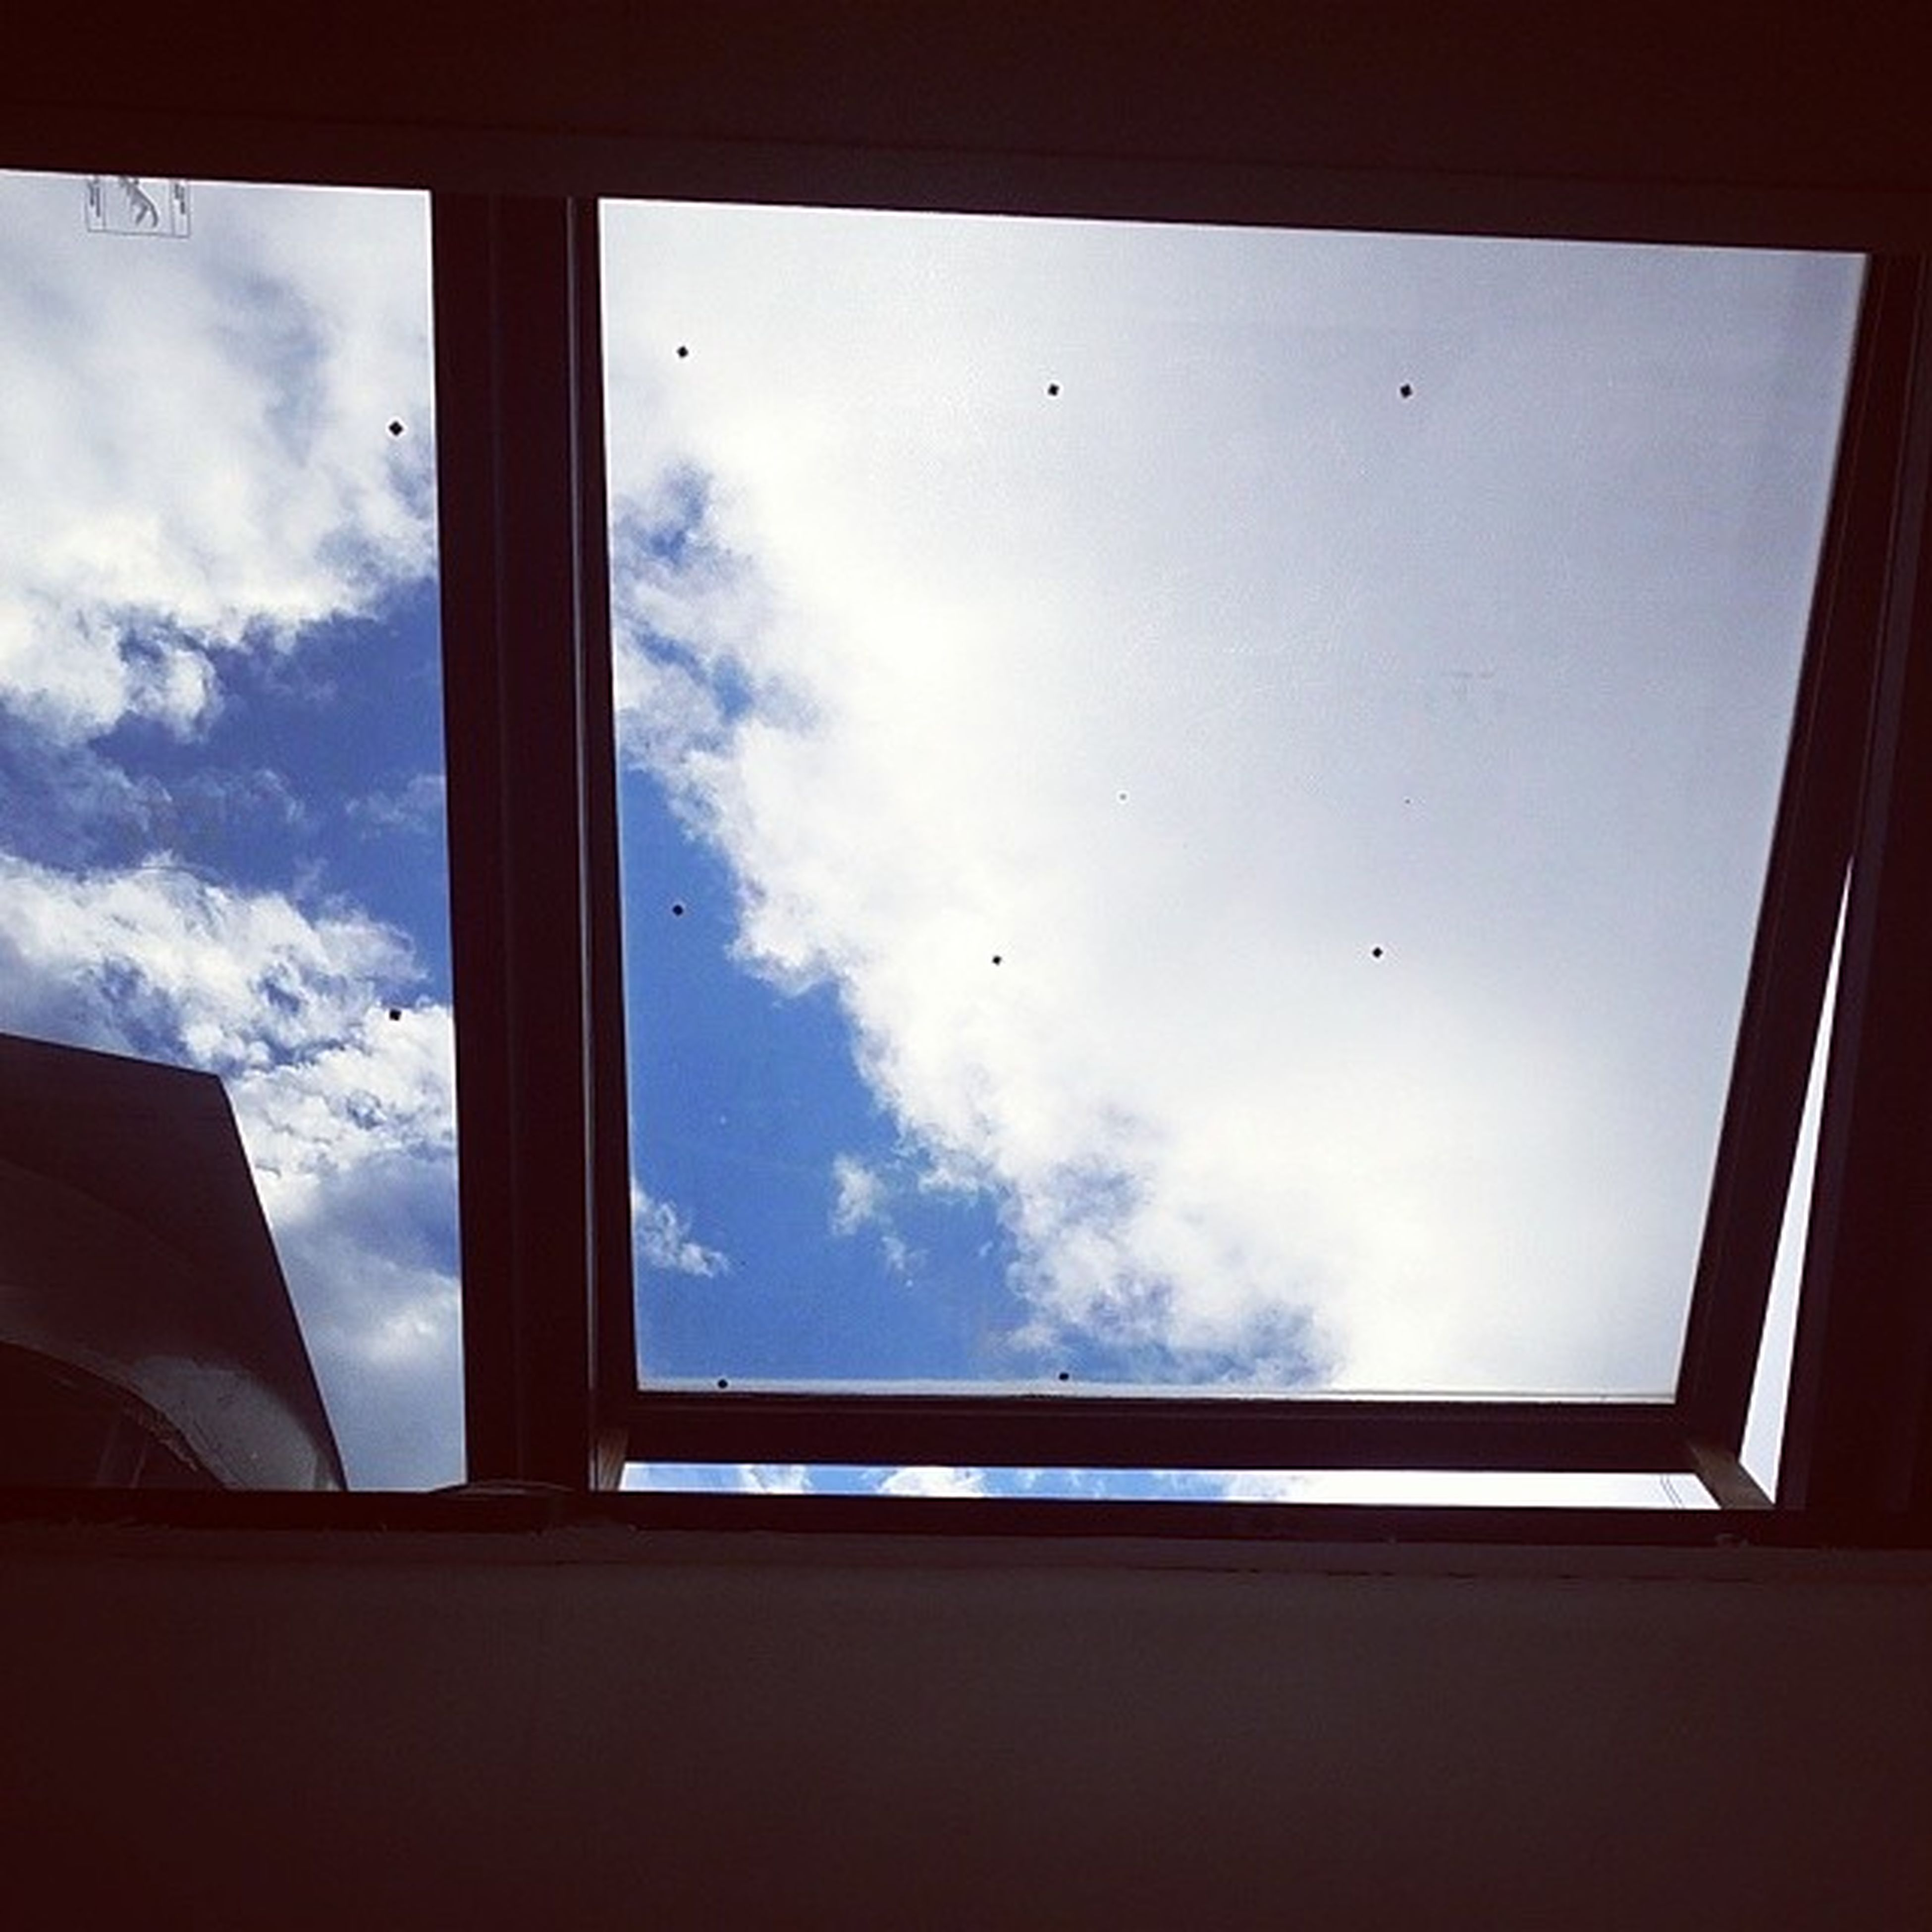 window, sky, indoors, low angle view, glass - material, animal themes, bird, transparent, cloud - sky, built structure, silhouette, flying, architecture, cloud, wildlife, glass, animals in the wild, looking through window, day, building exterior